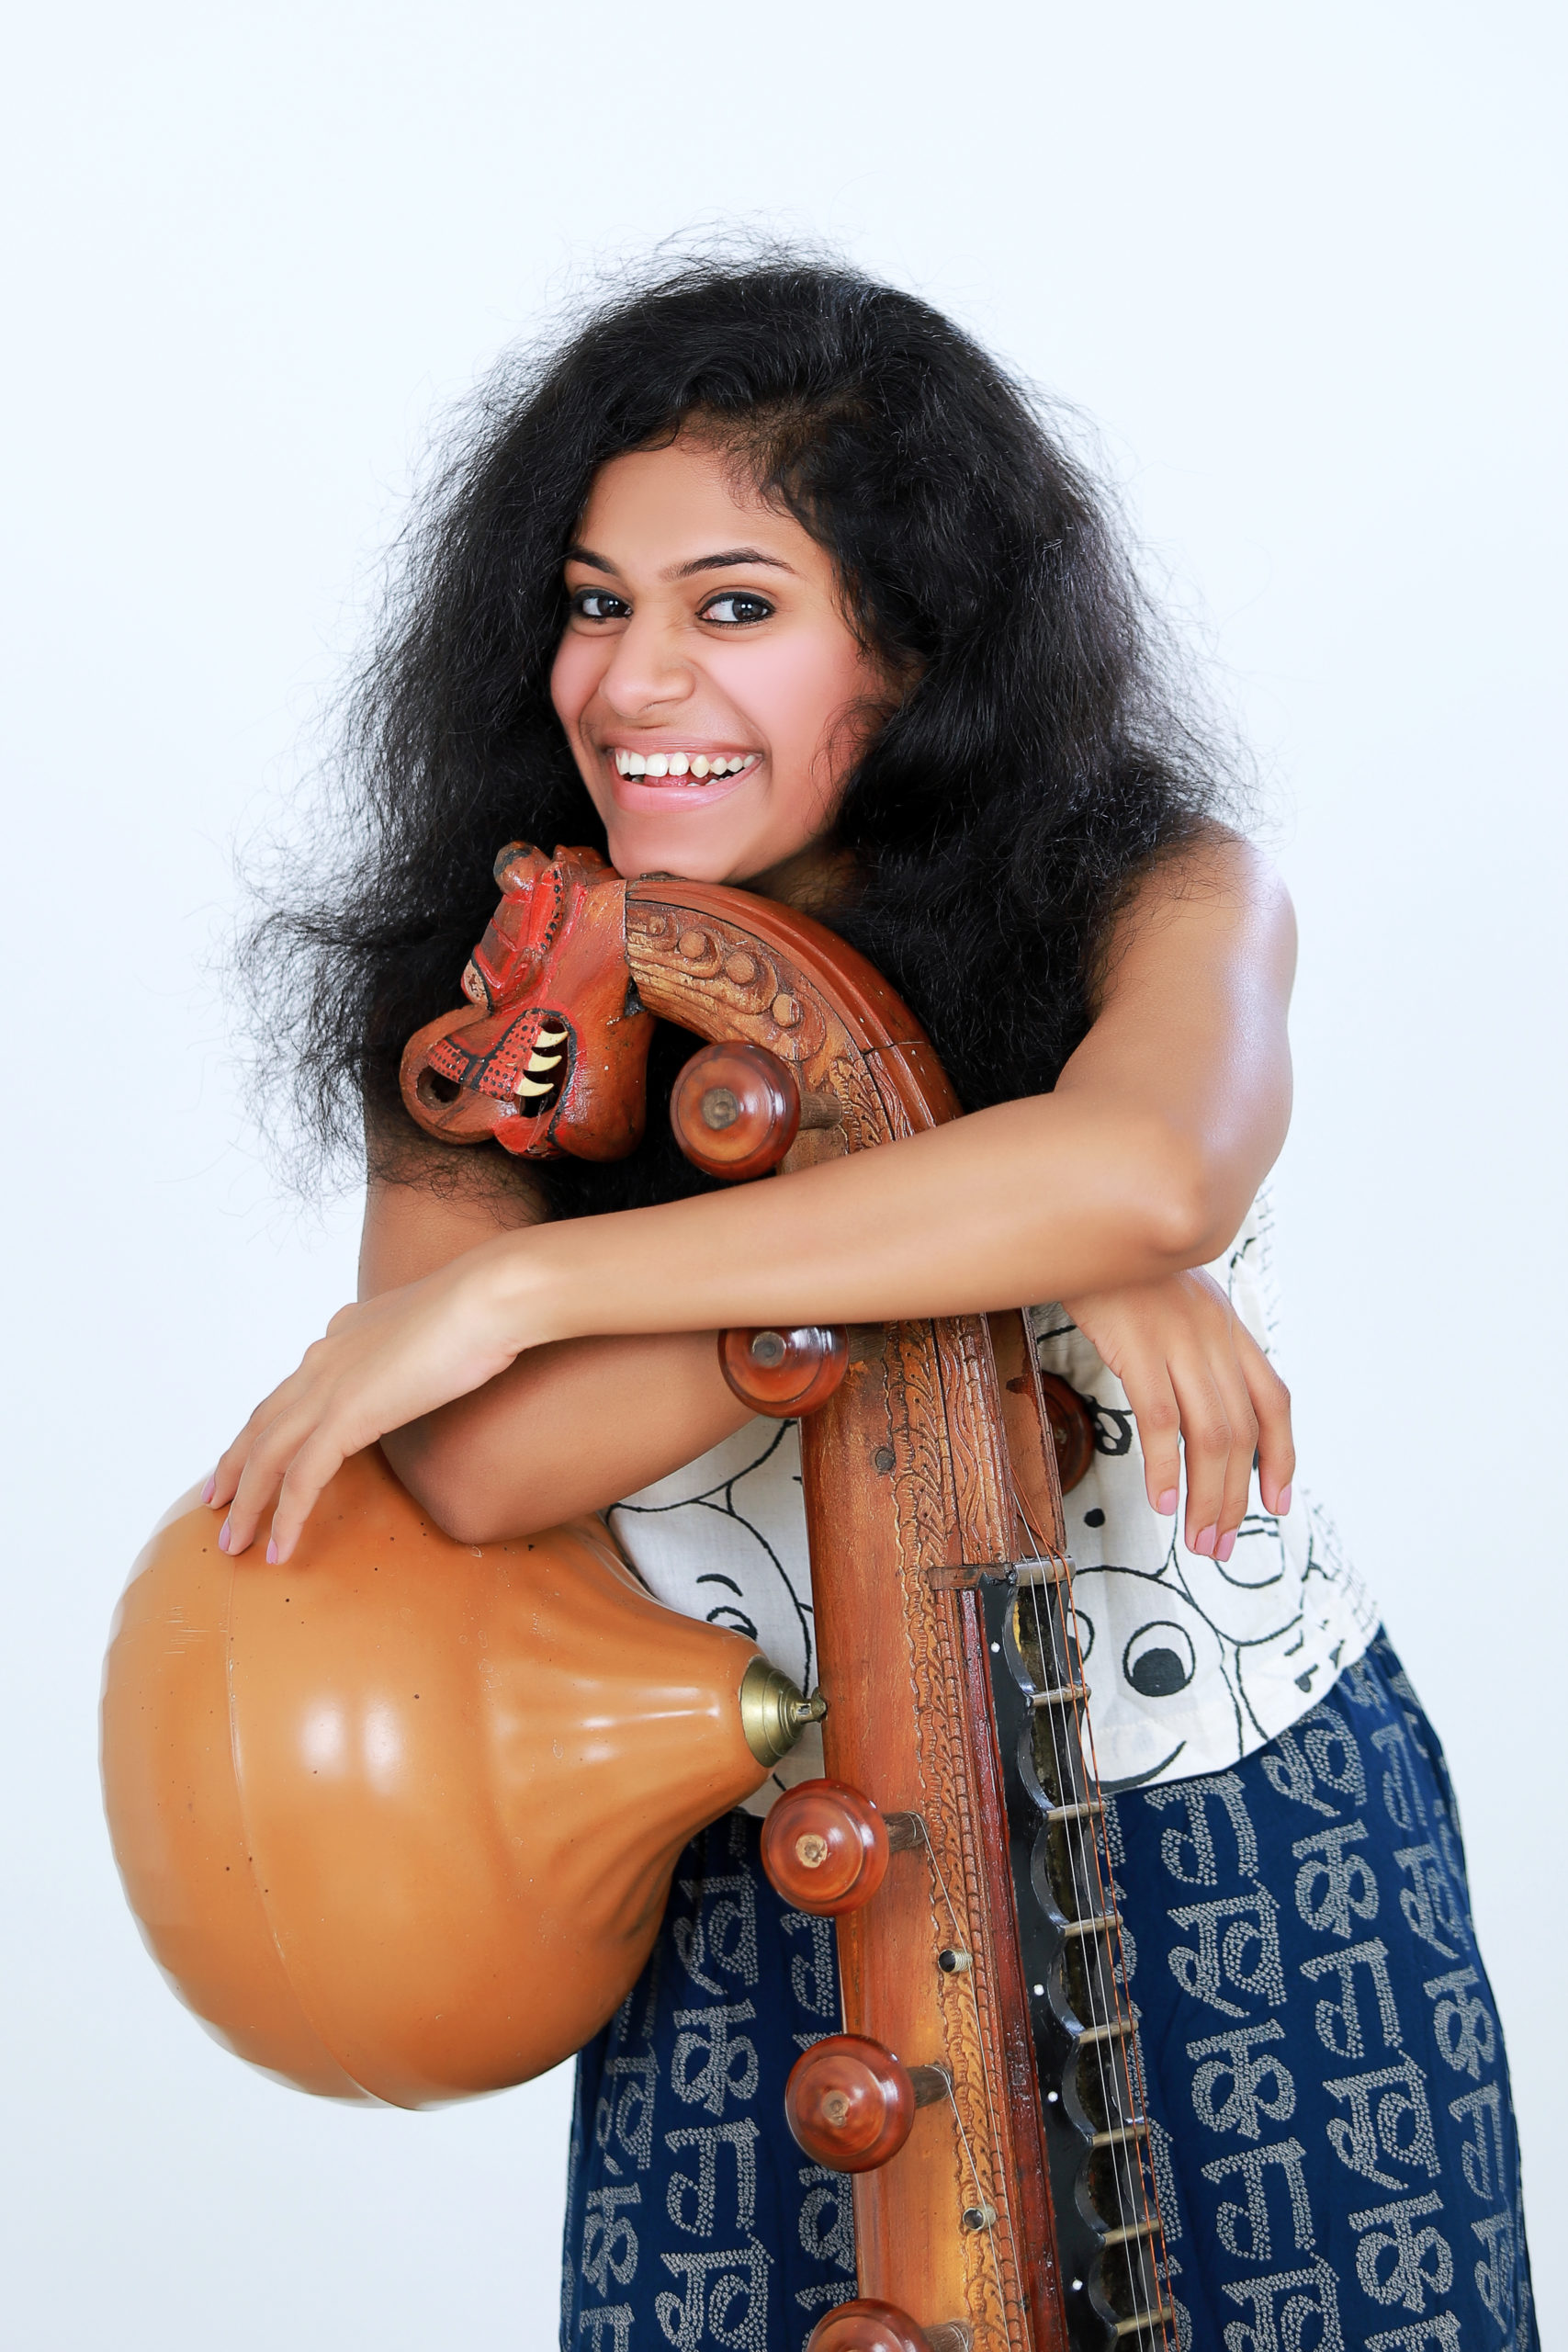 Tara Rajendran: Could An Ancient Instrument in Combination with Modern Medicine Hold the Secrets to Healing?